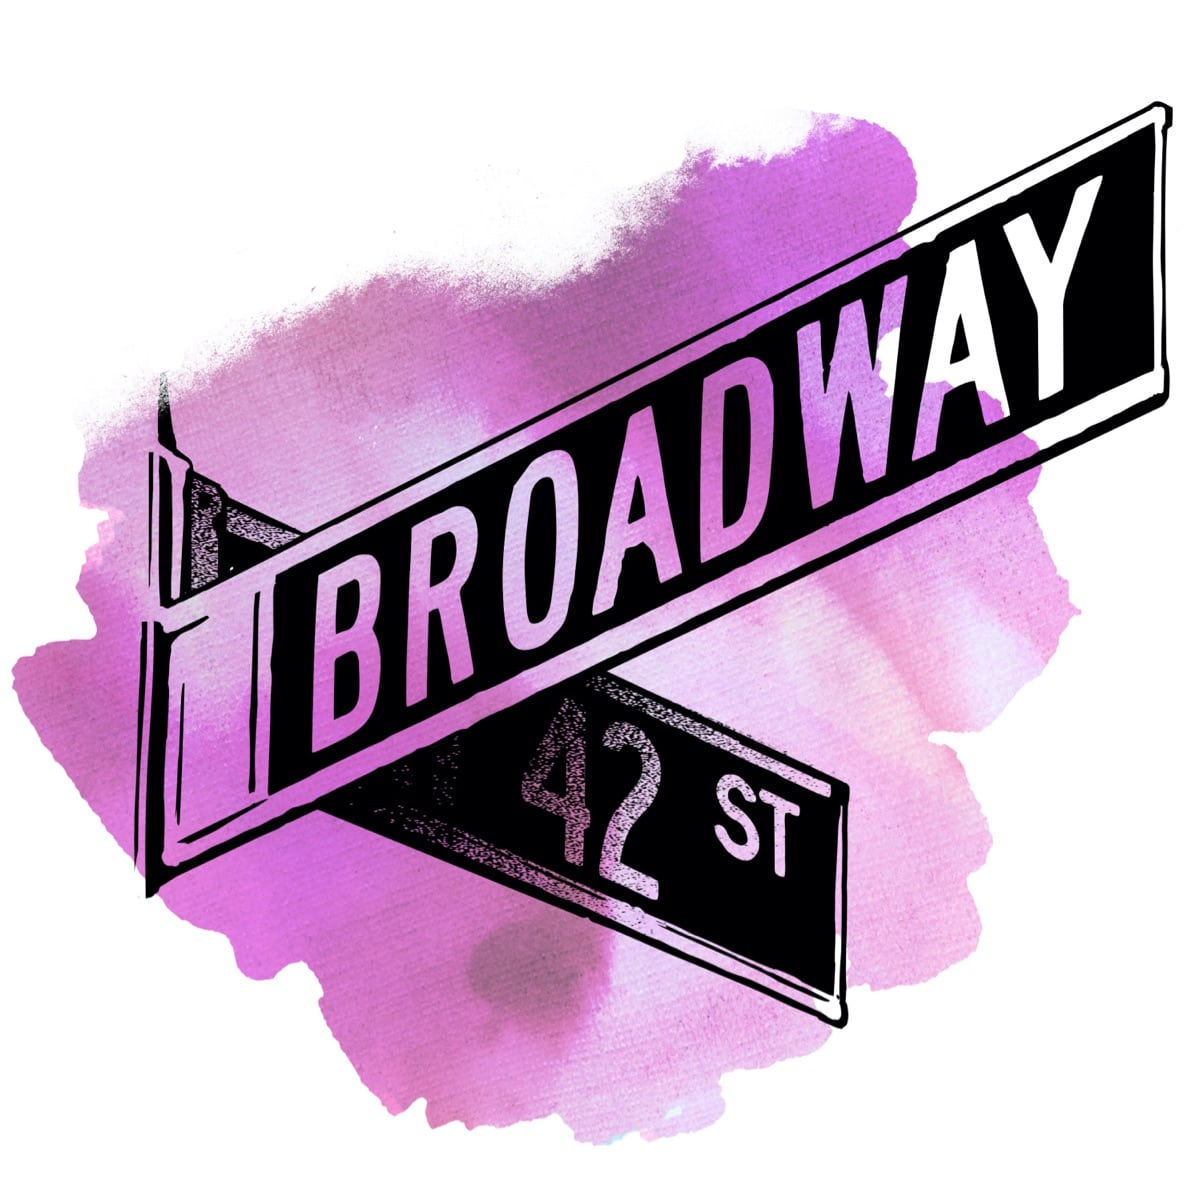 A watercolor illustration of the street signs marking the corner of Broadway and West 42nd Street in New York City. If you can make it there, you can make it anywhere!